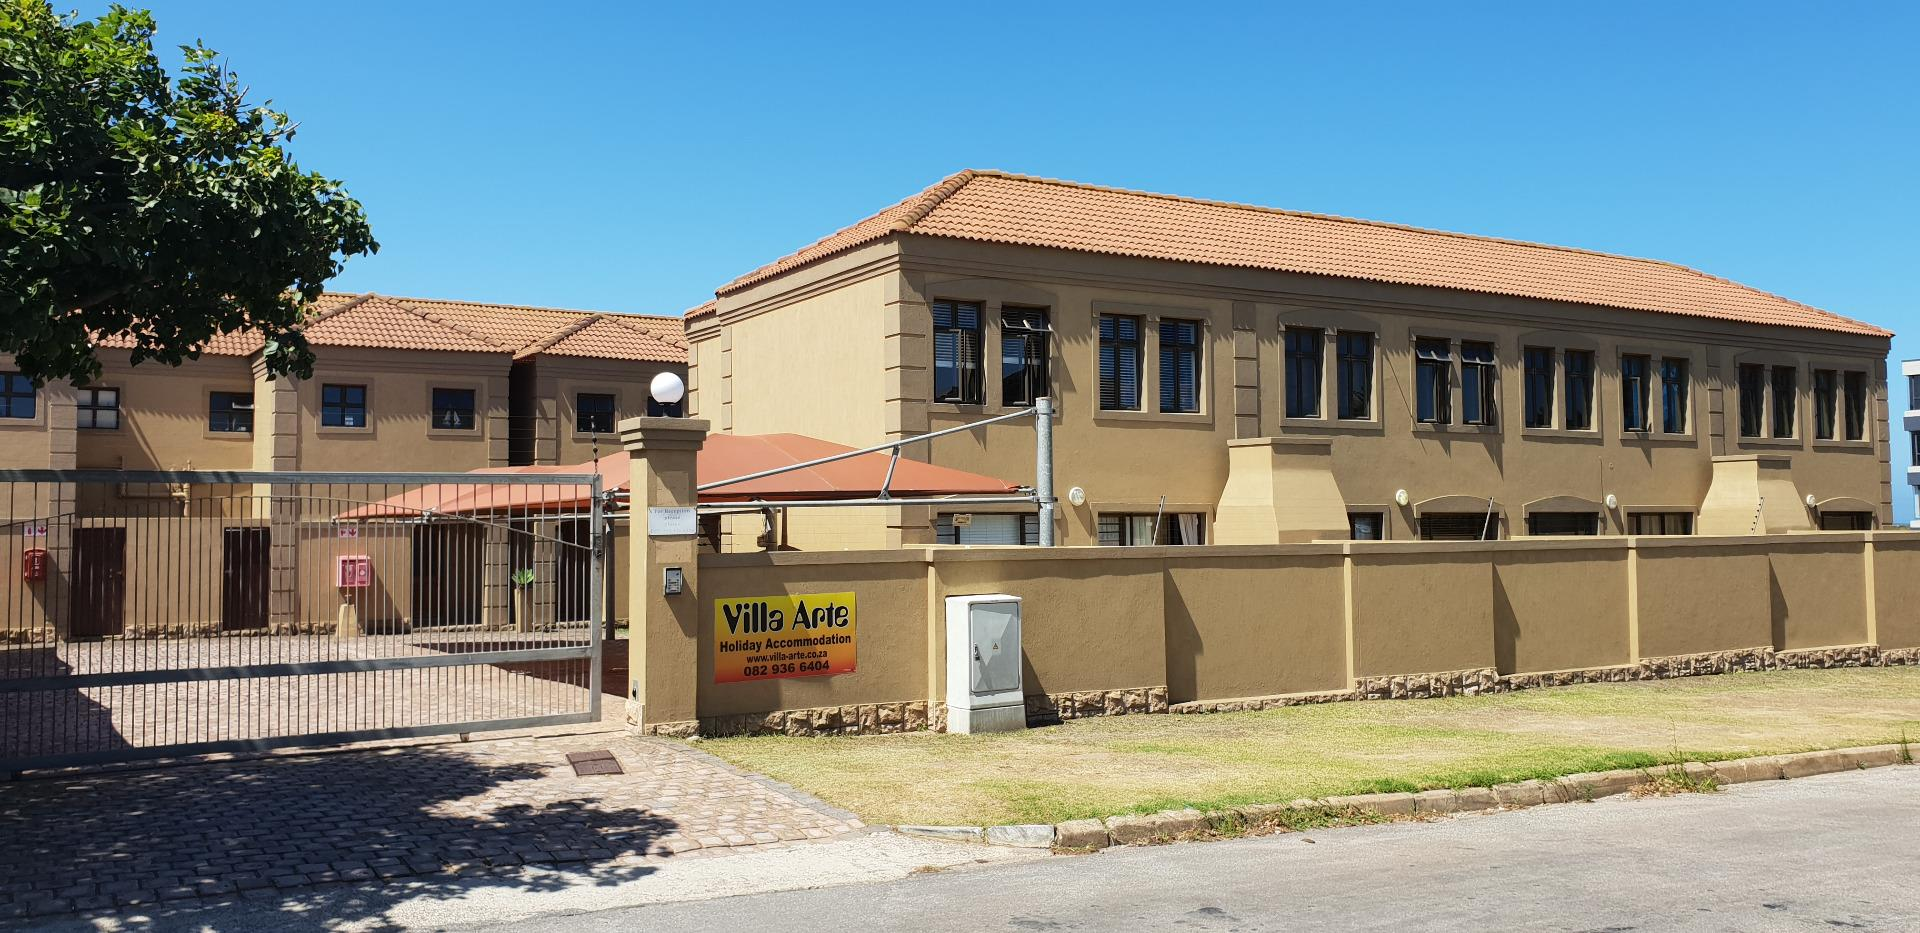 2 Bedroom Apartment for Sale in Ferreira Town, Jeffreys Bay - Eastern Cape